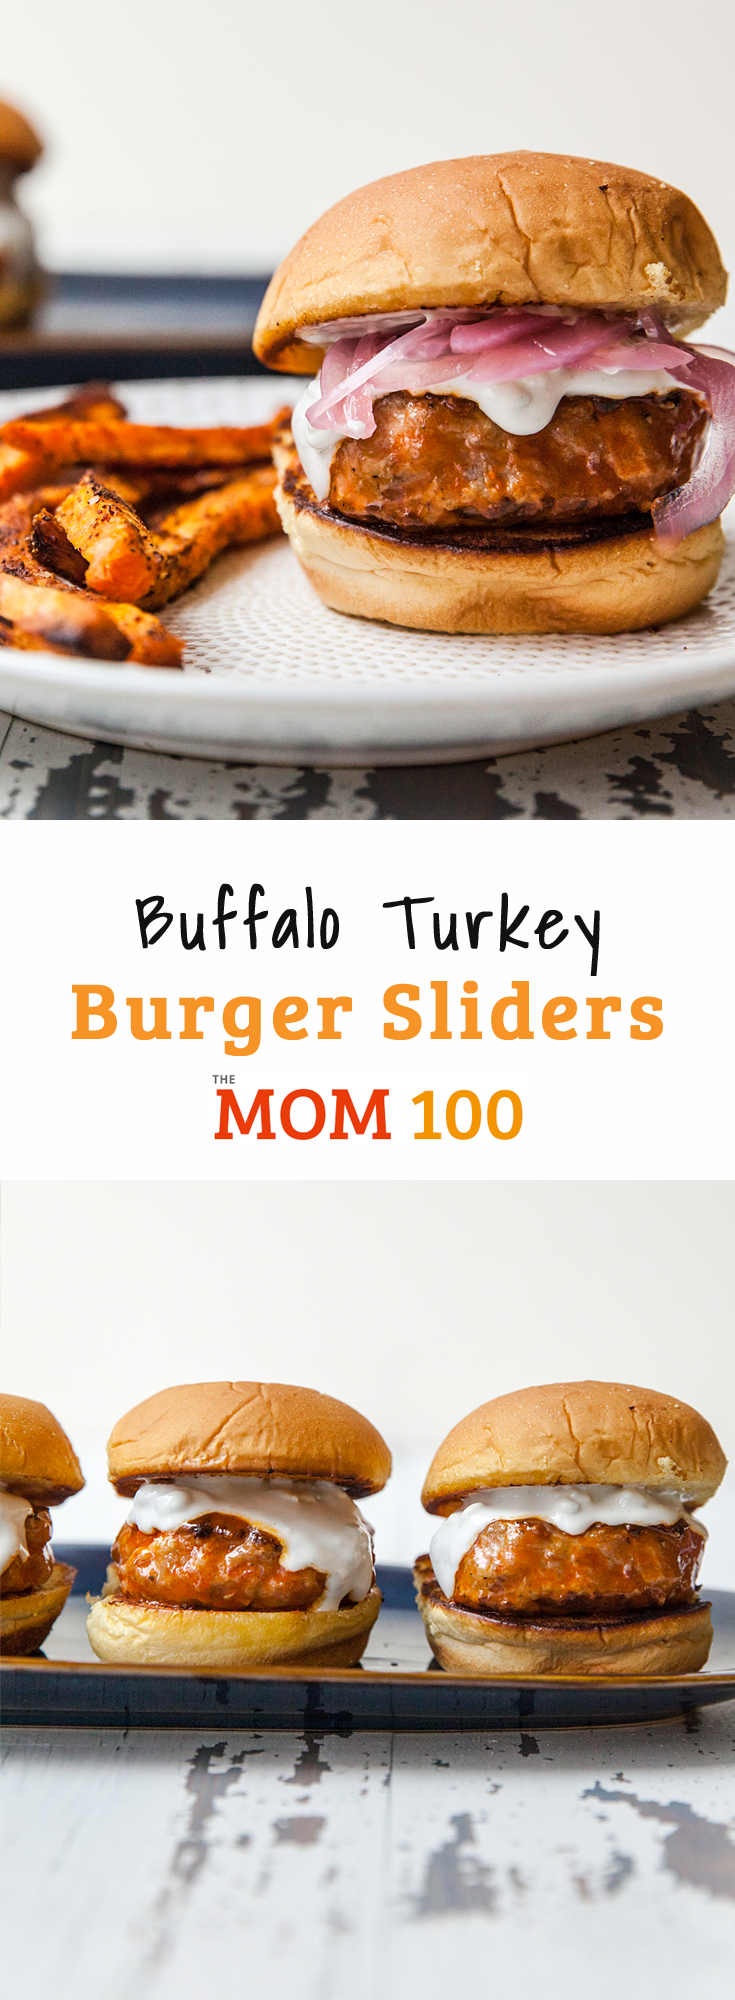 Buffalo Turkey Burger Sliders / Easy buffalo turkey burger sliders that will quickly become part of your regular rotation. Who doesn't love the idea of comfort-bar food at home?